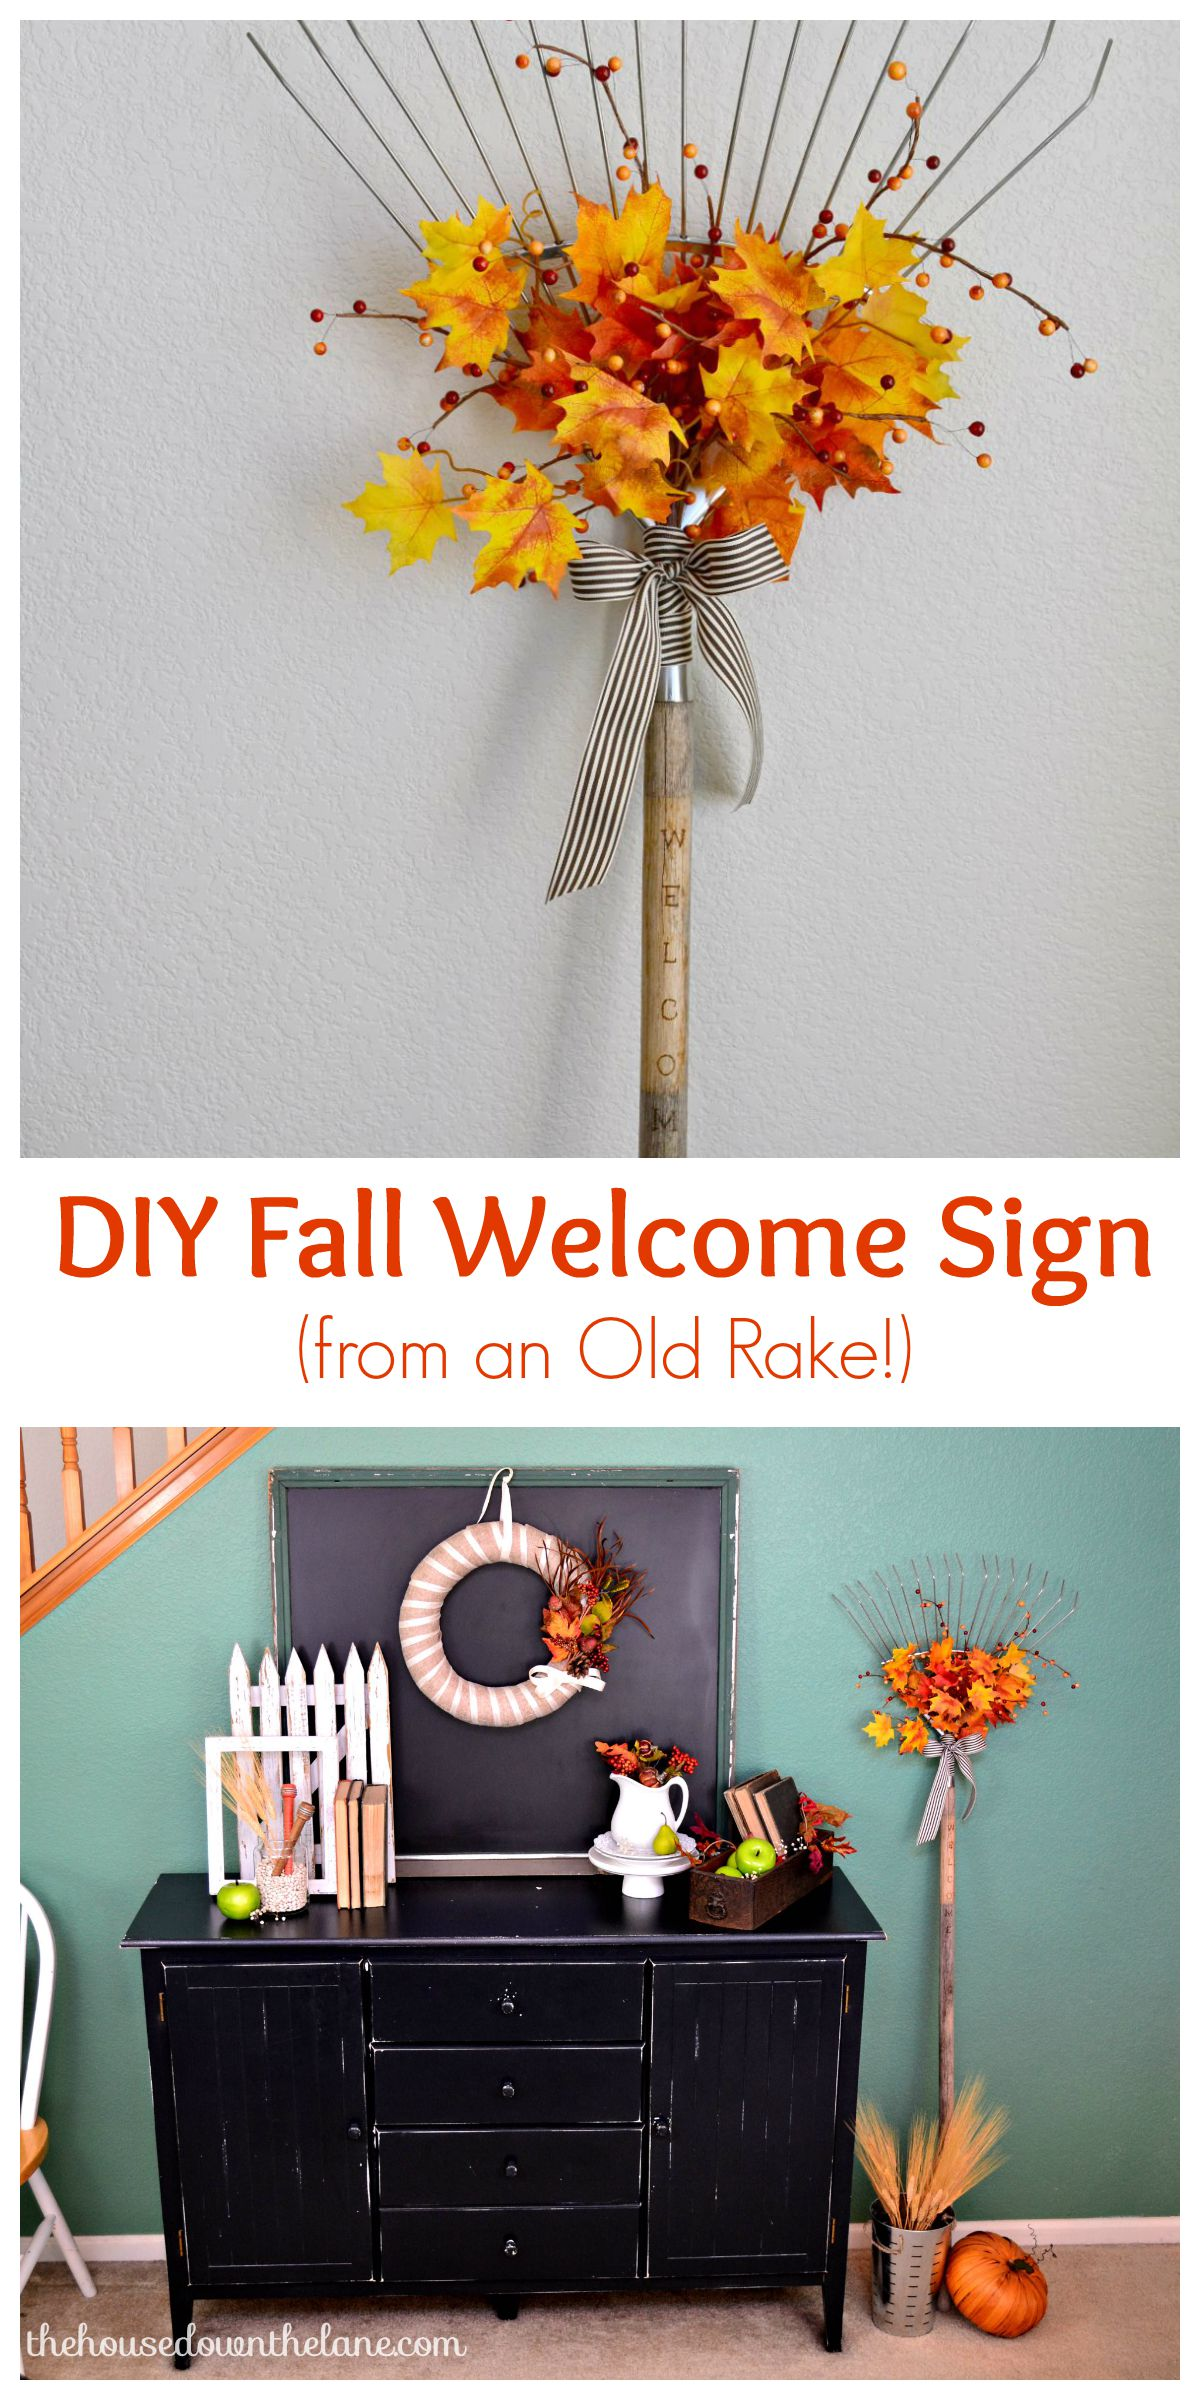 An easy fall DIY! A welcome sign from an old rake!